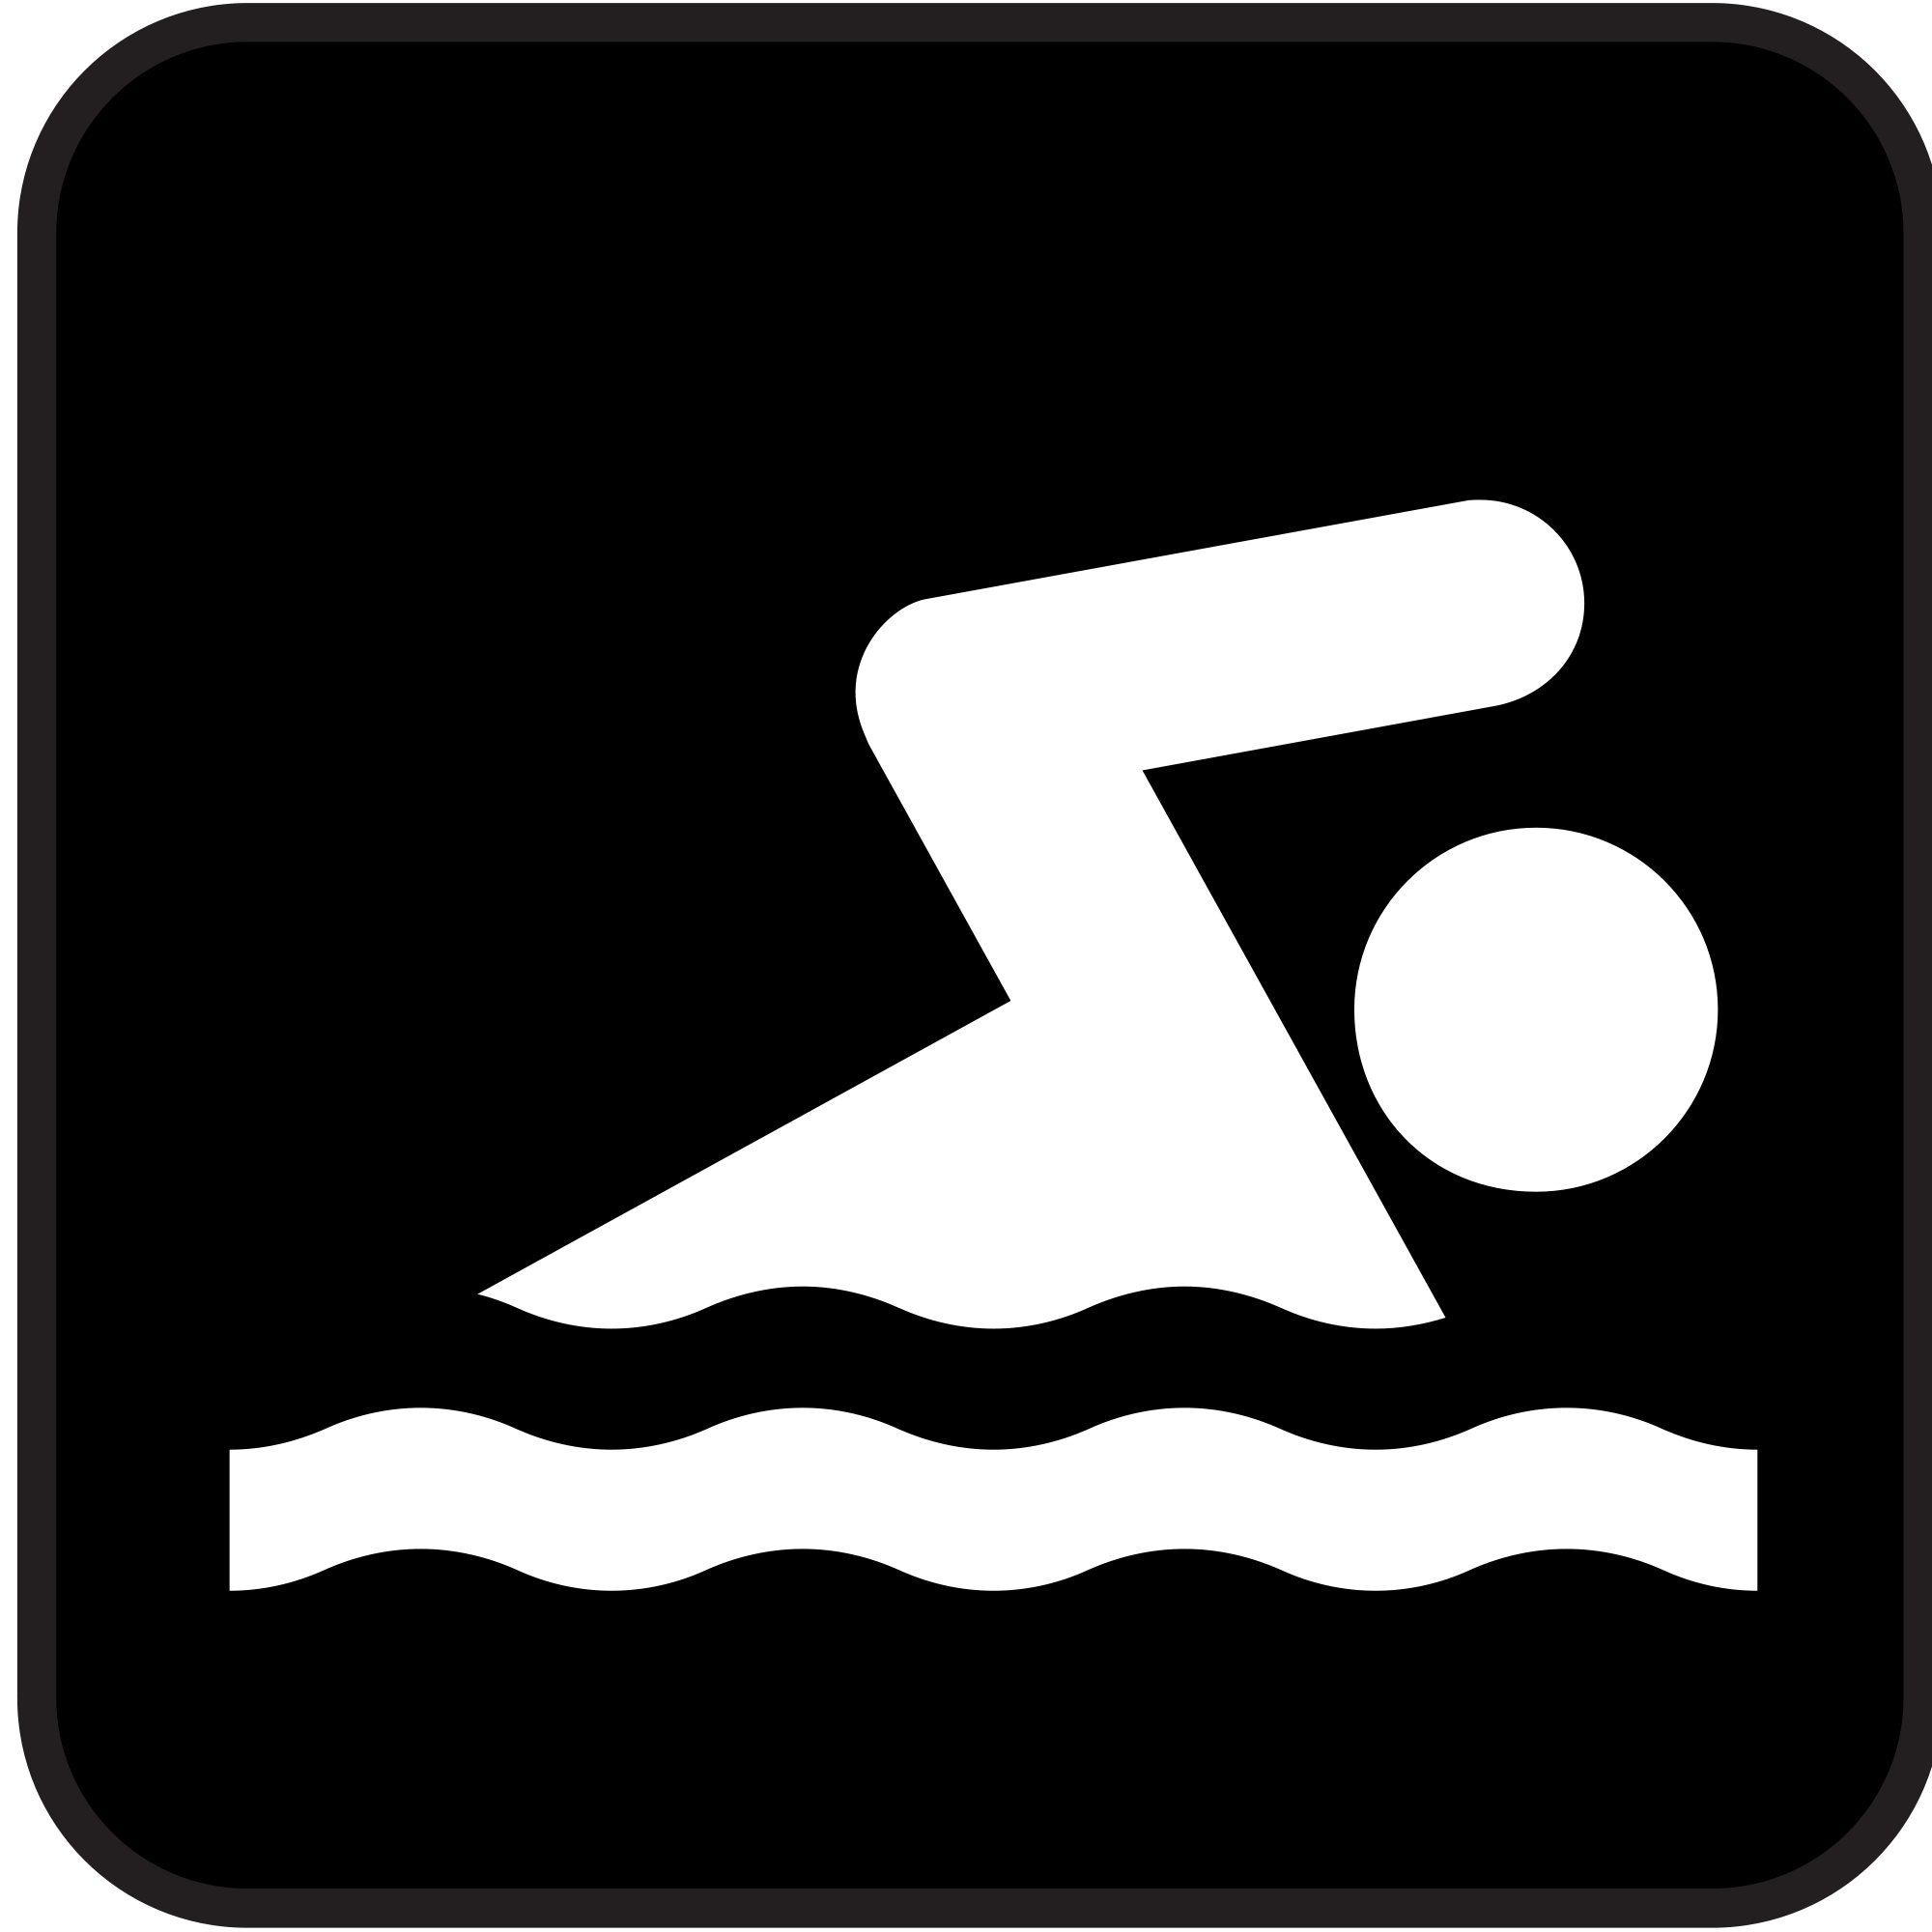 Swimming svg #274, Download drawings